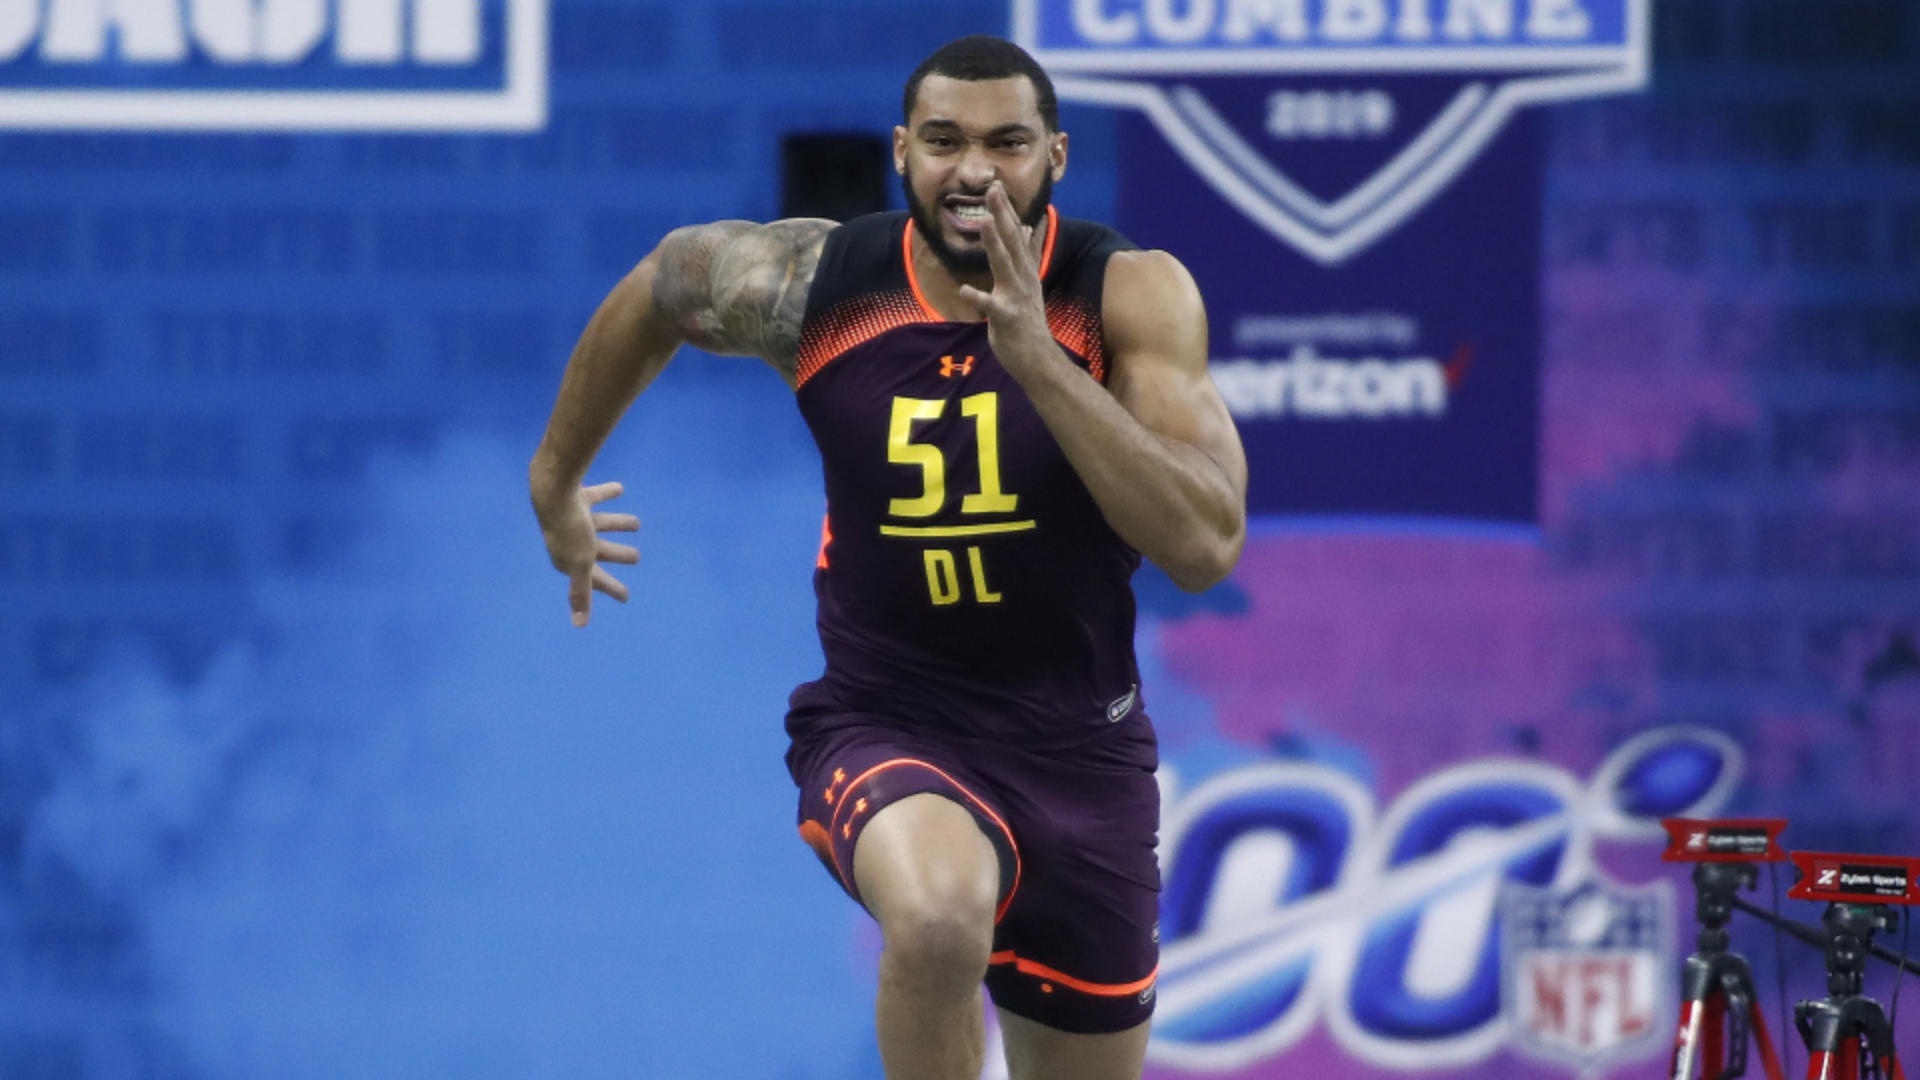 2019 NFL Draft Grades: Redskins get a B for taking Montez Sweat after trading back into the first round